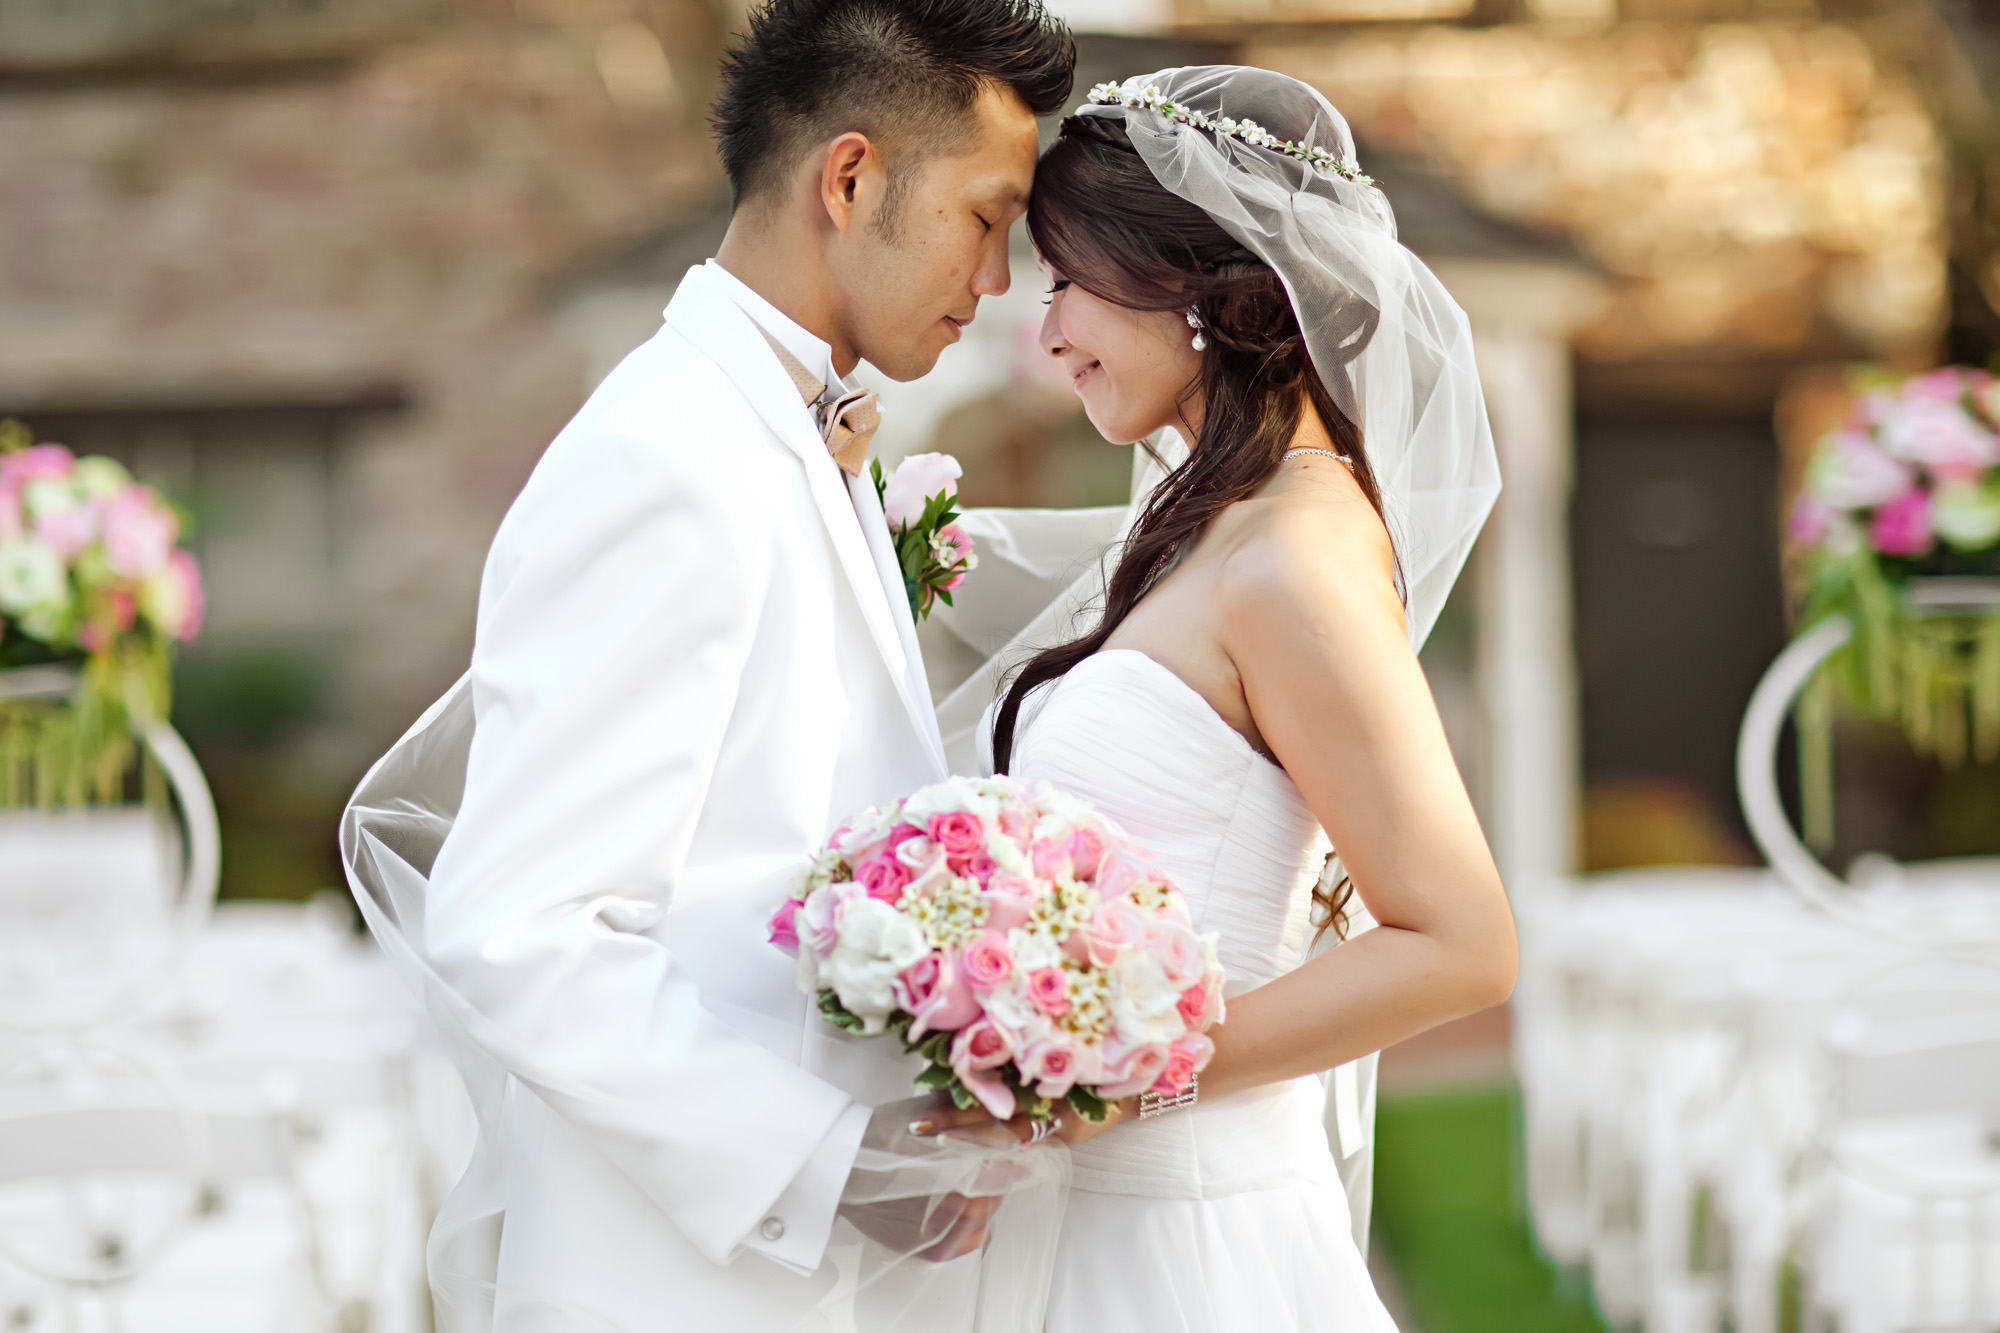 Wedding Photography Consultant: Professional Wedding Photography